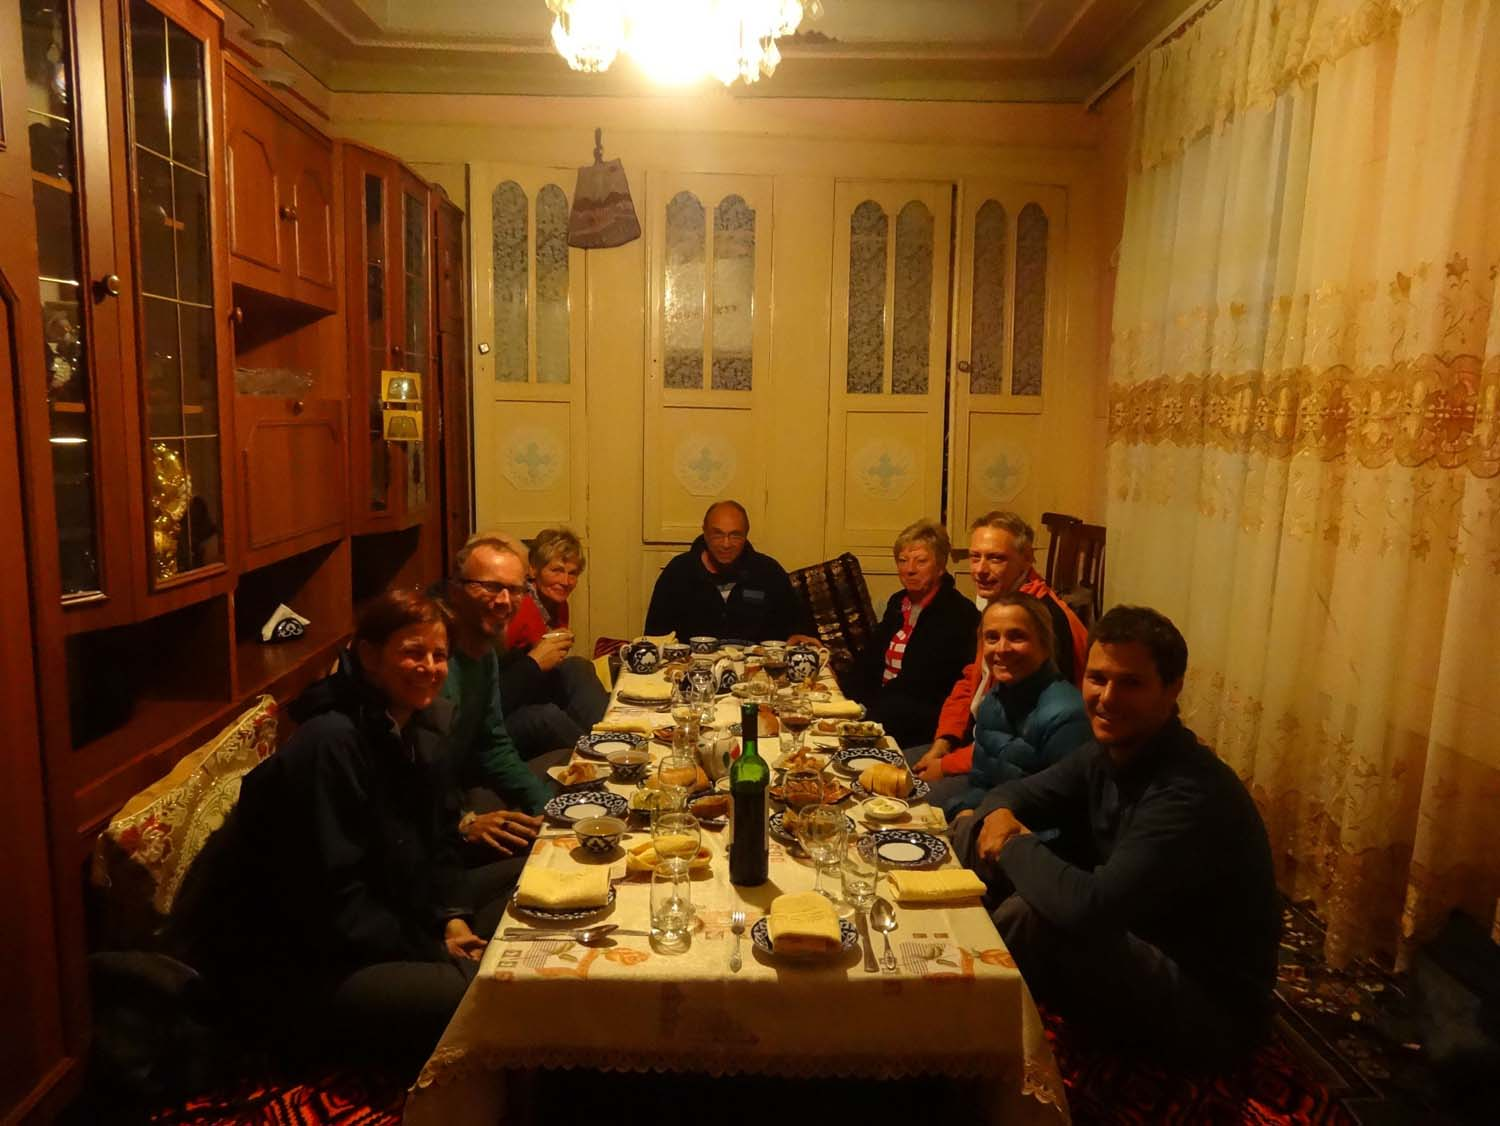 our only enjoyable dinner in Uzbekistan - the food here is diabolical